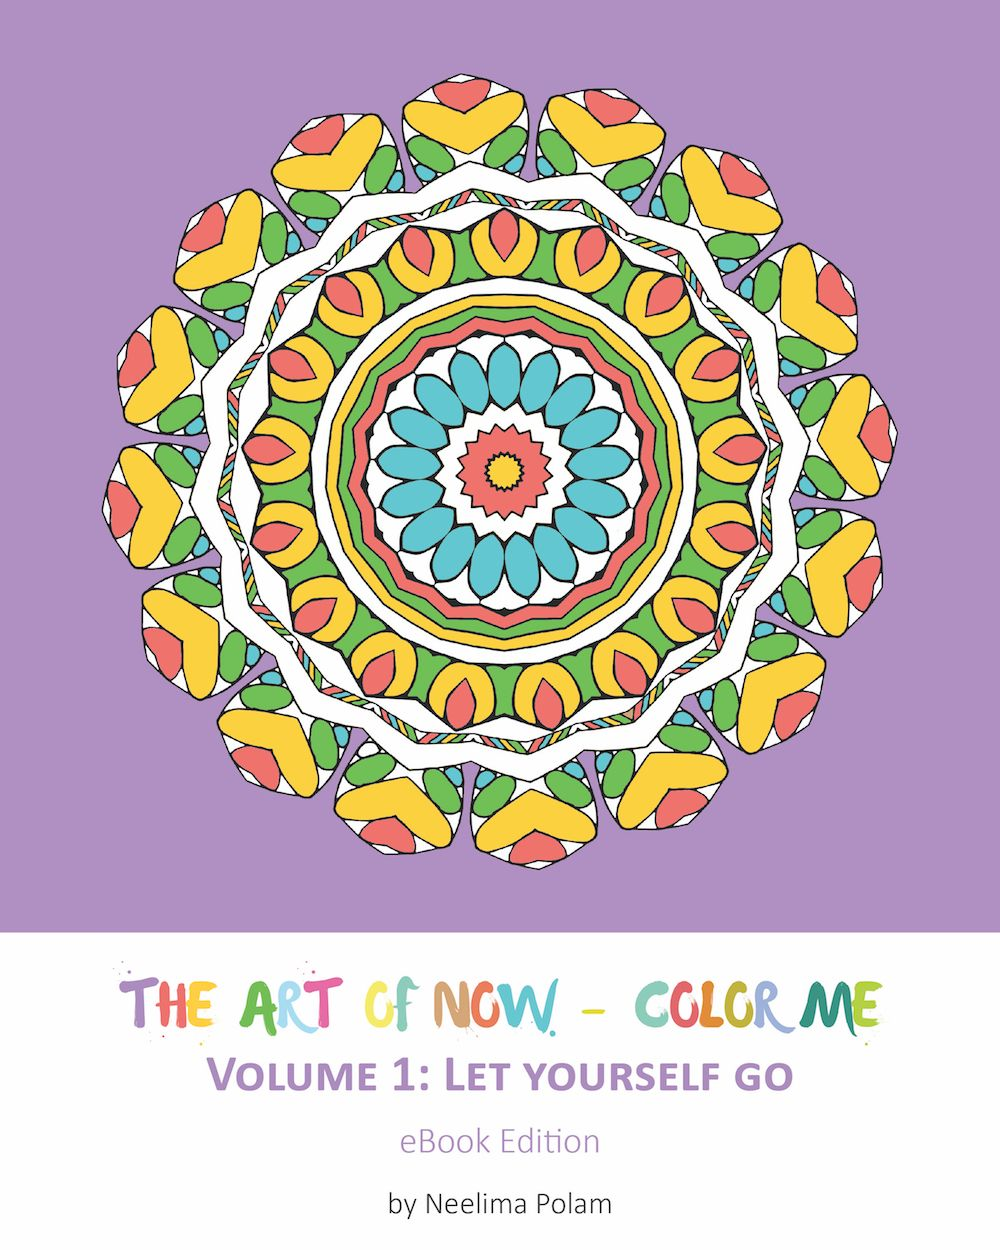 The coloring book e book -  Sale Alert Early Buyers Special The Art Of Now Color Me